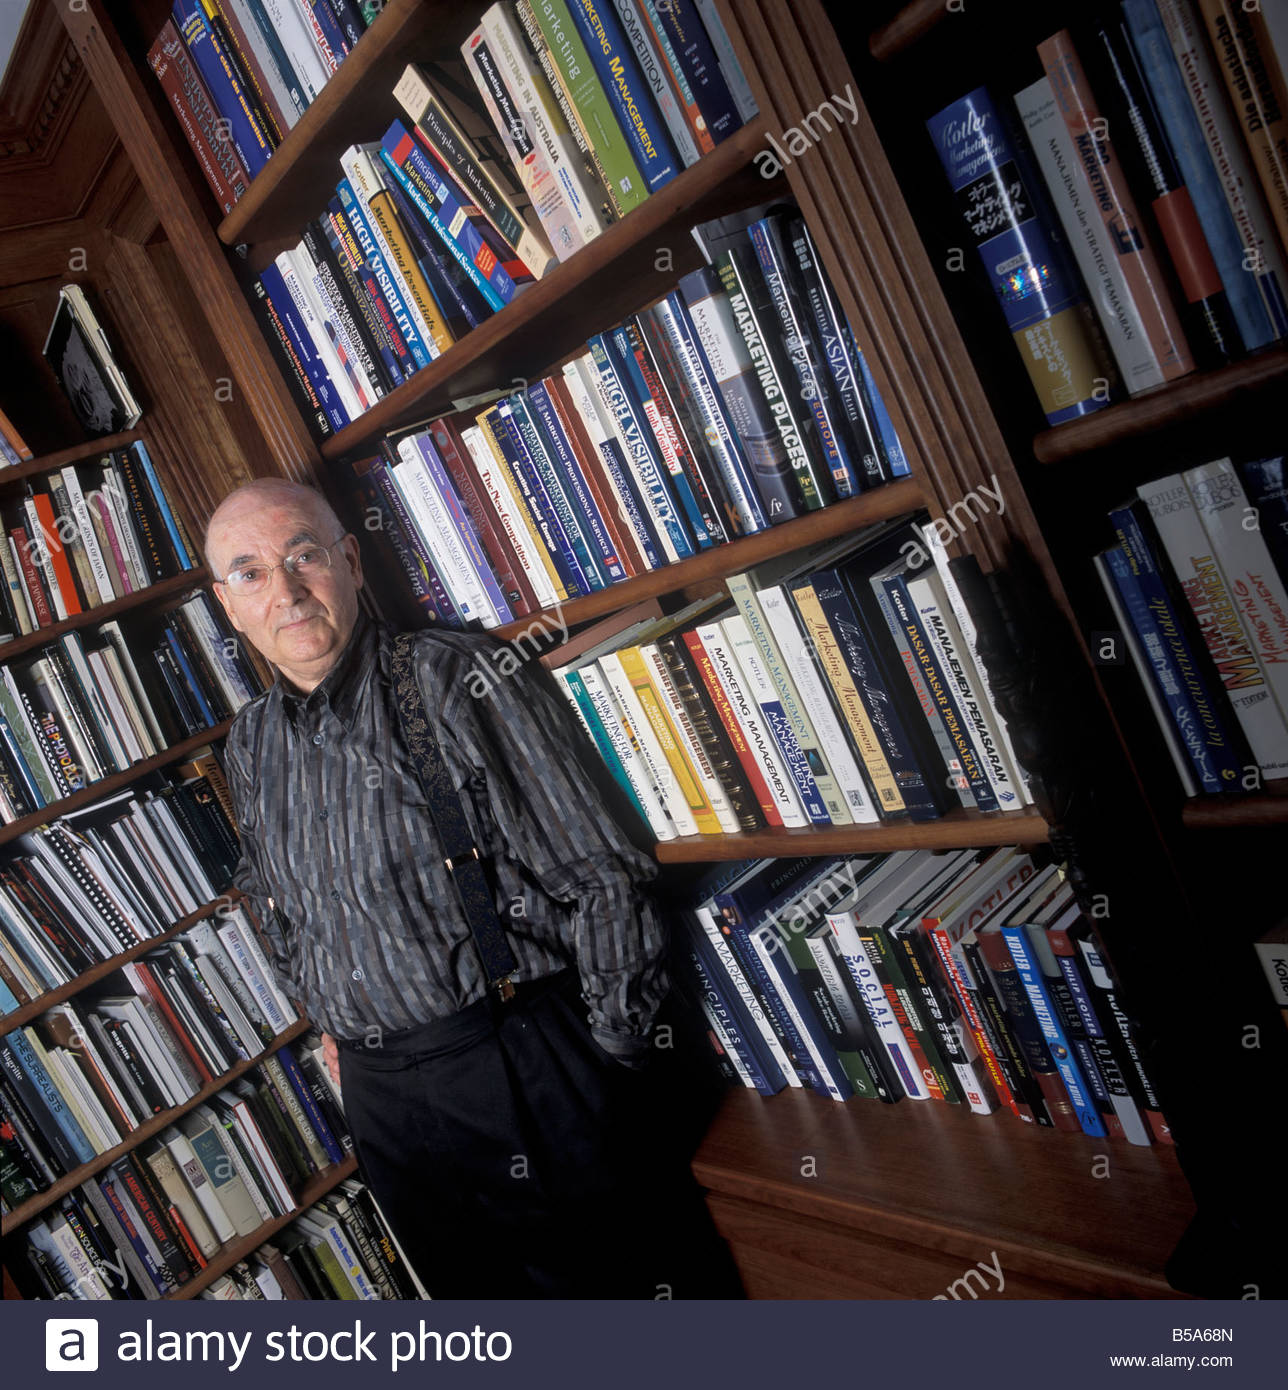 Philip Kotler Marketing Consultant At Home With His Books Stock Photo Alamy